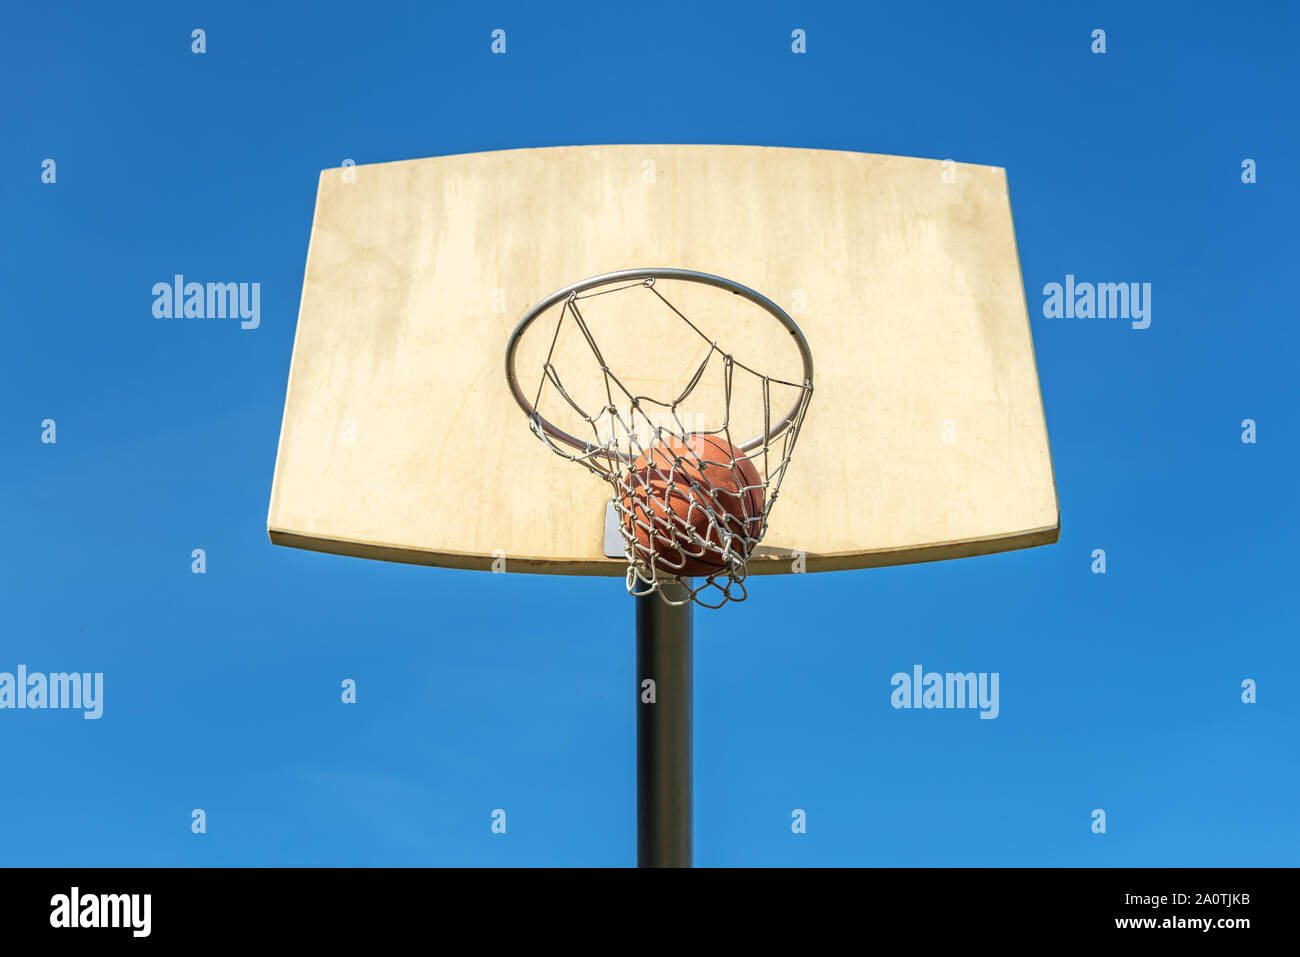 Basketball flies into the basketball ring. Stock Photo